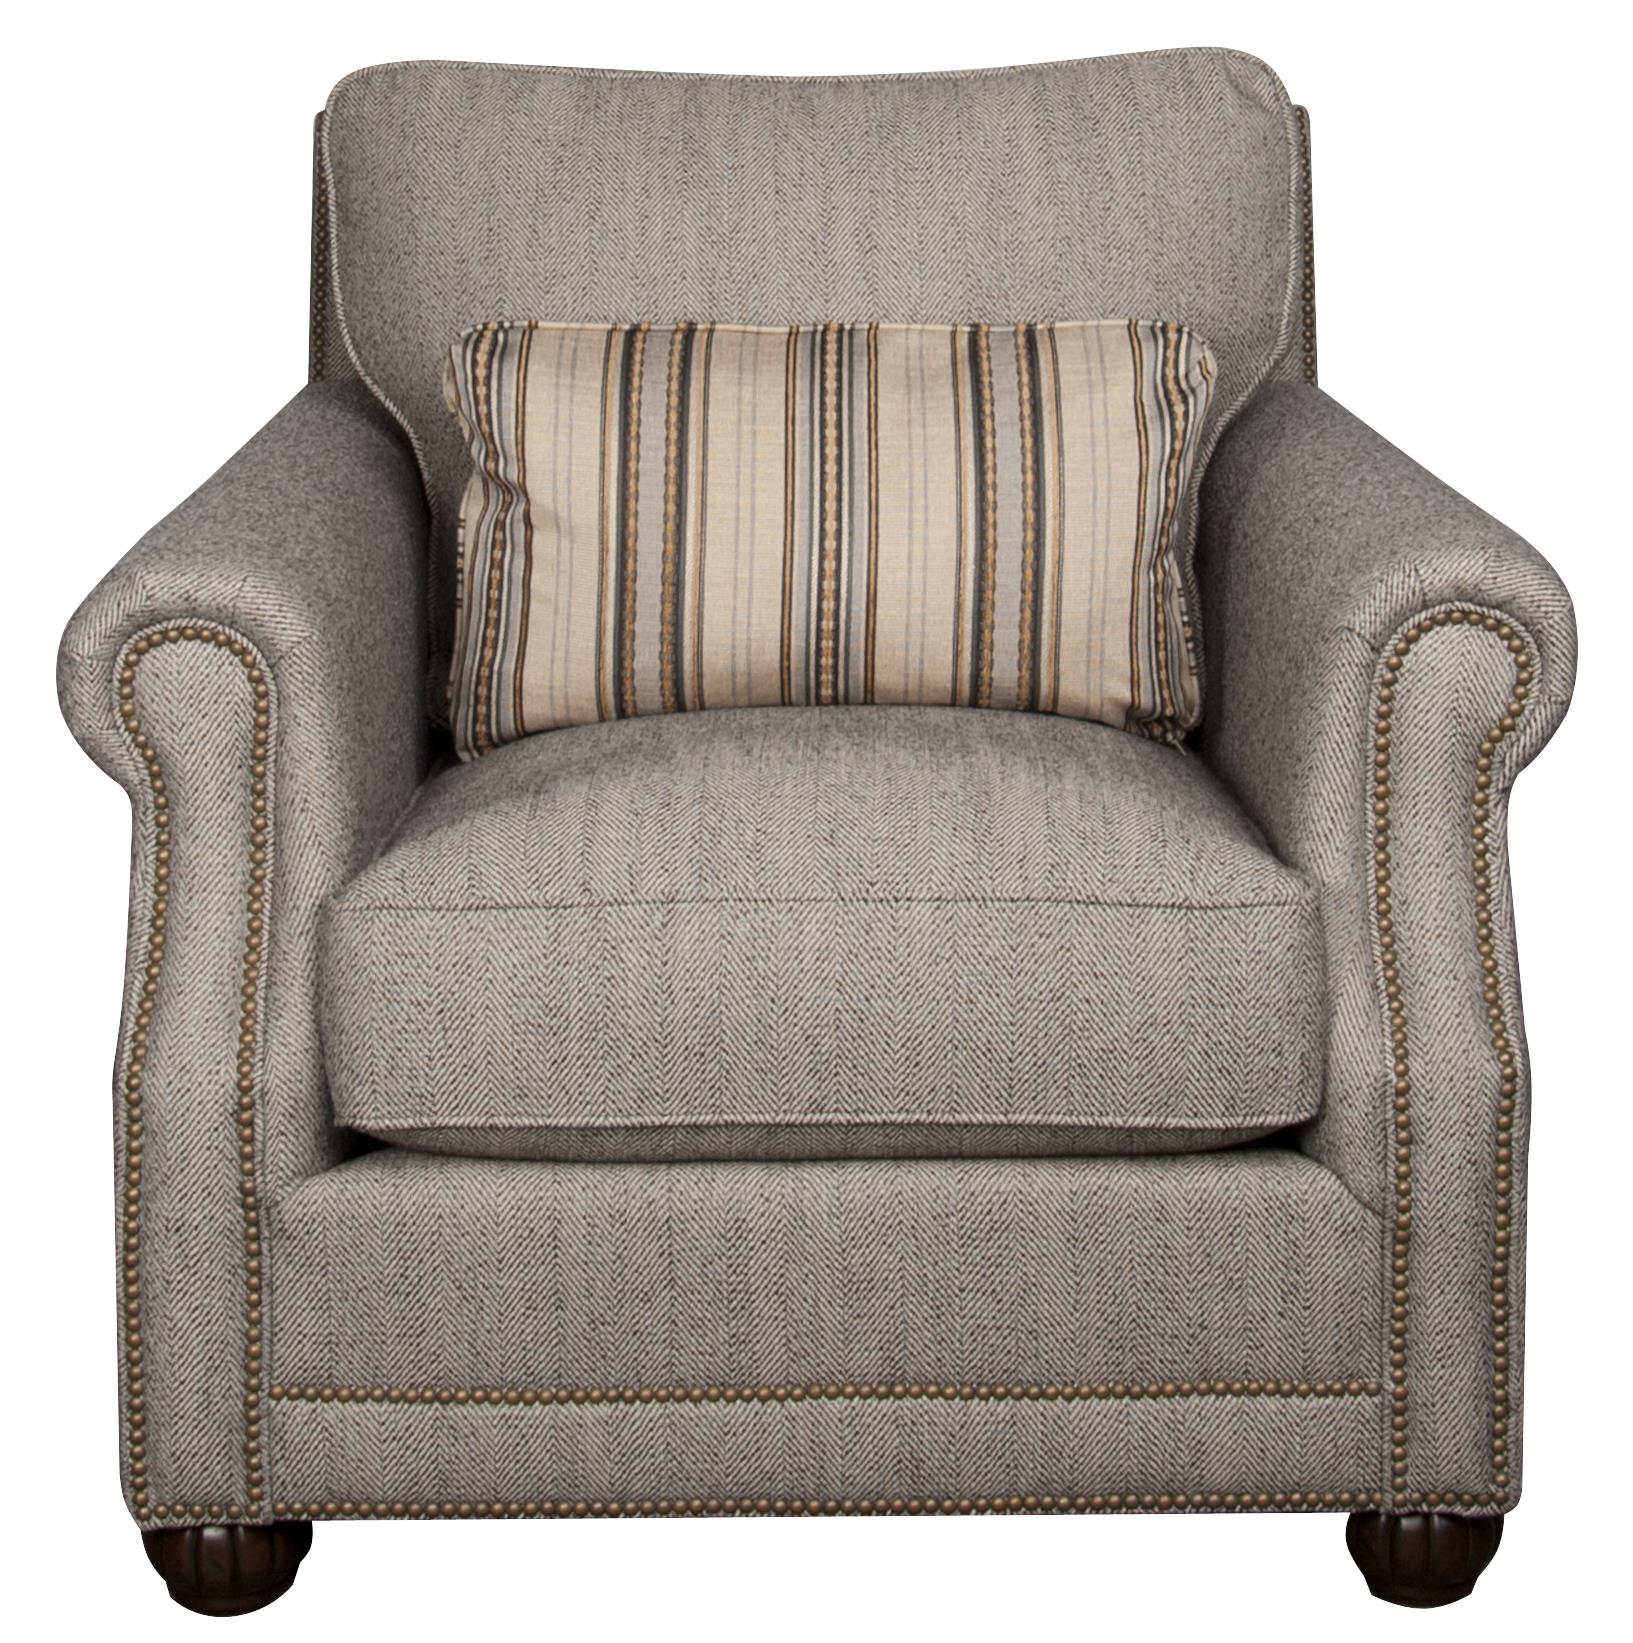 Morris Home Furnishings Sherry Sherry Fabric Accent Chair - Item Number: 807442335